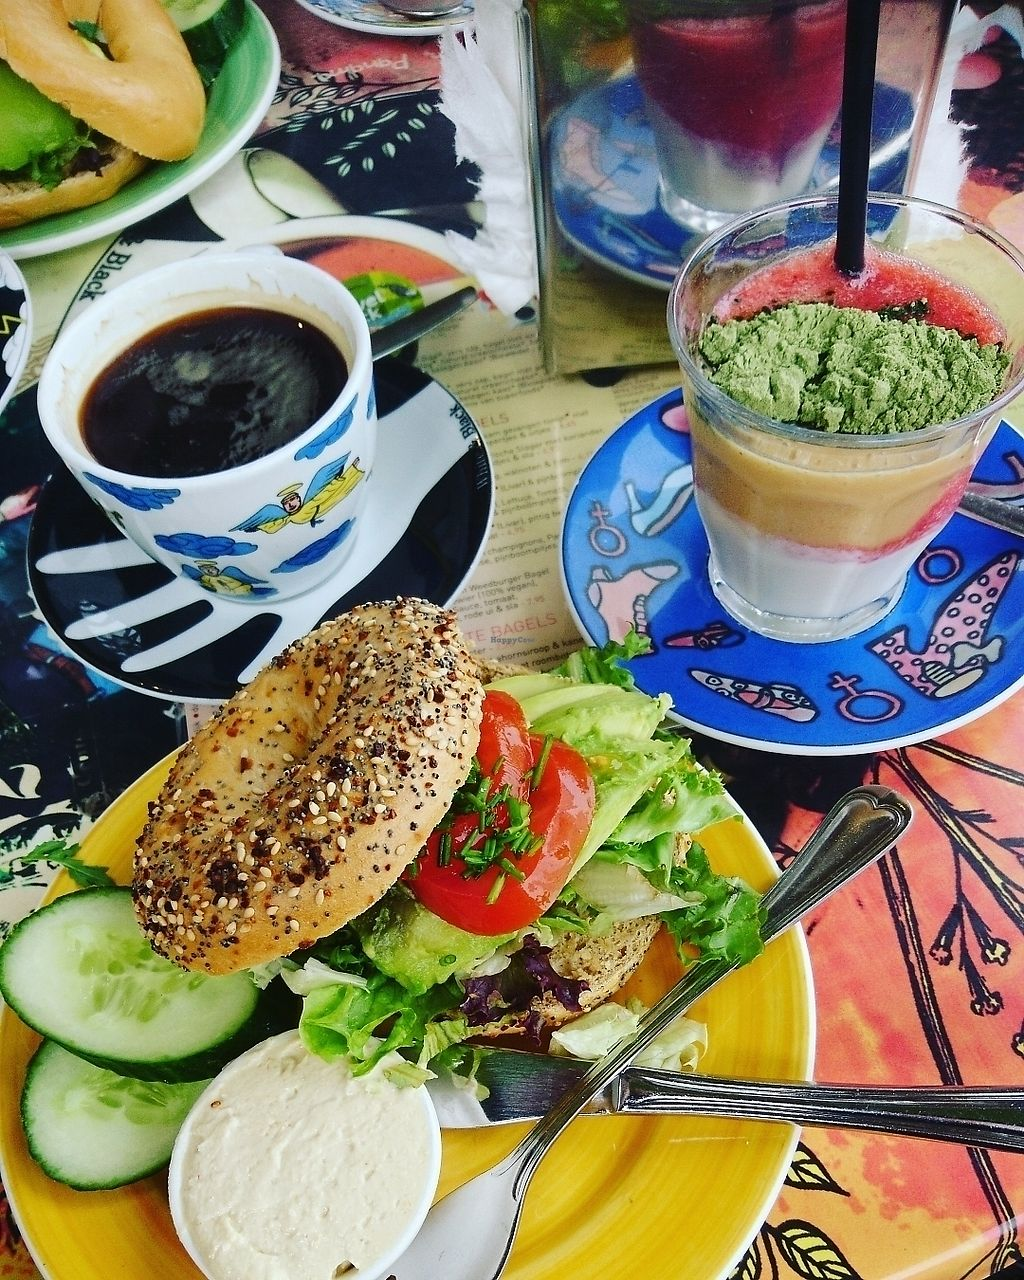 "Photo of Bagels & Beans - Ruyschstraat  by <a href=""/members/profile/JennyHell"">JennyHell</a> <br/>Vegan breakfast  <br/> July 22, 2017  - <a href='/contact/abuse/image/49256/283166'>Report</a>"